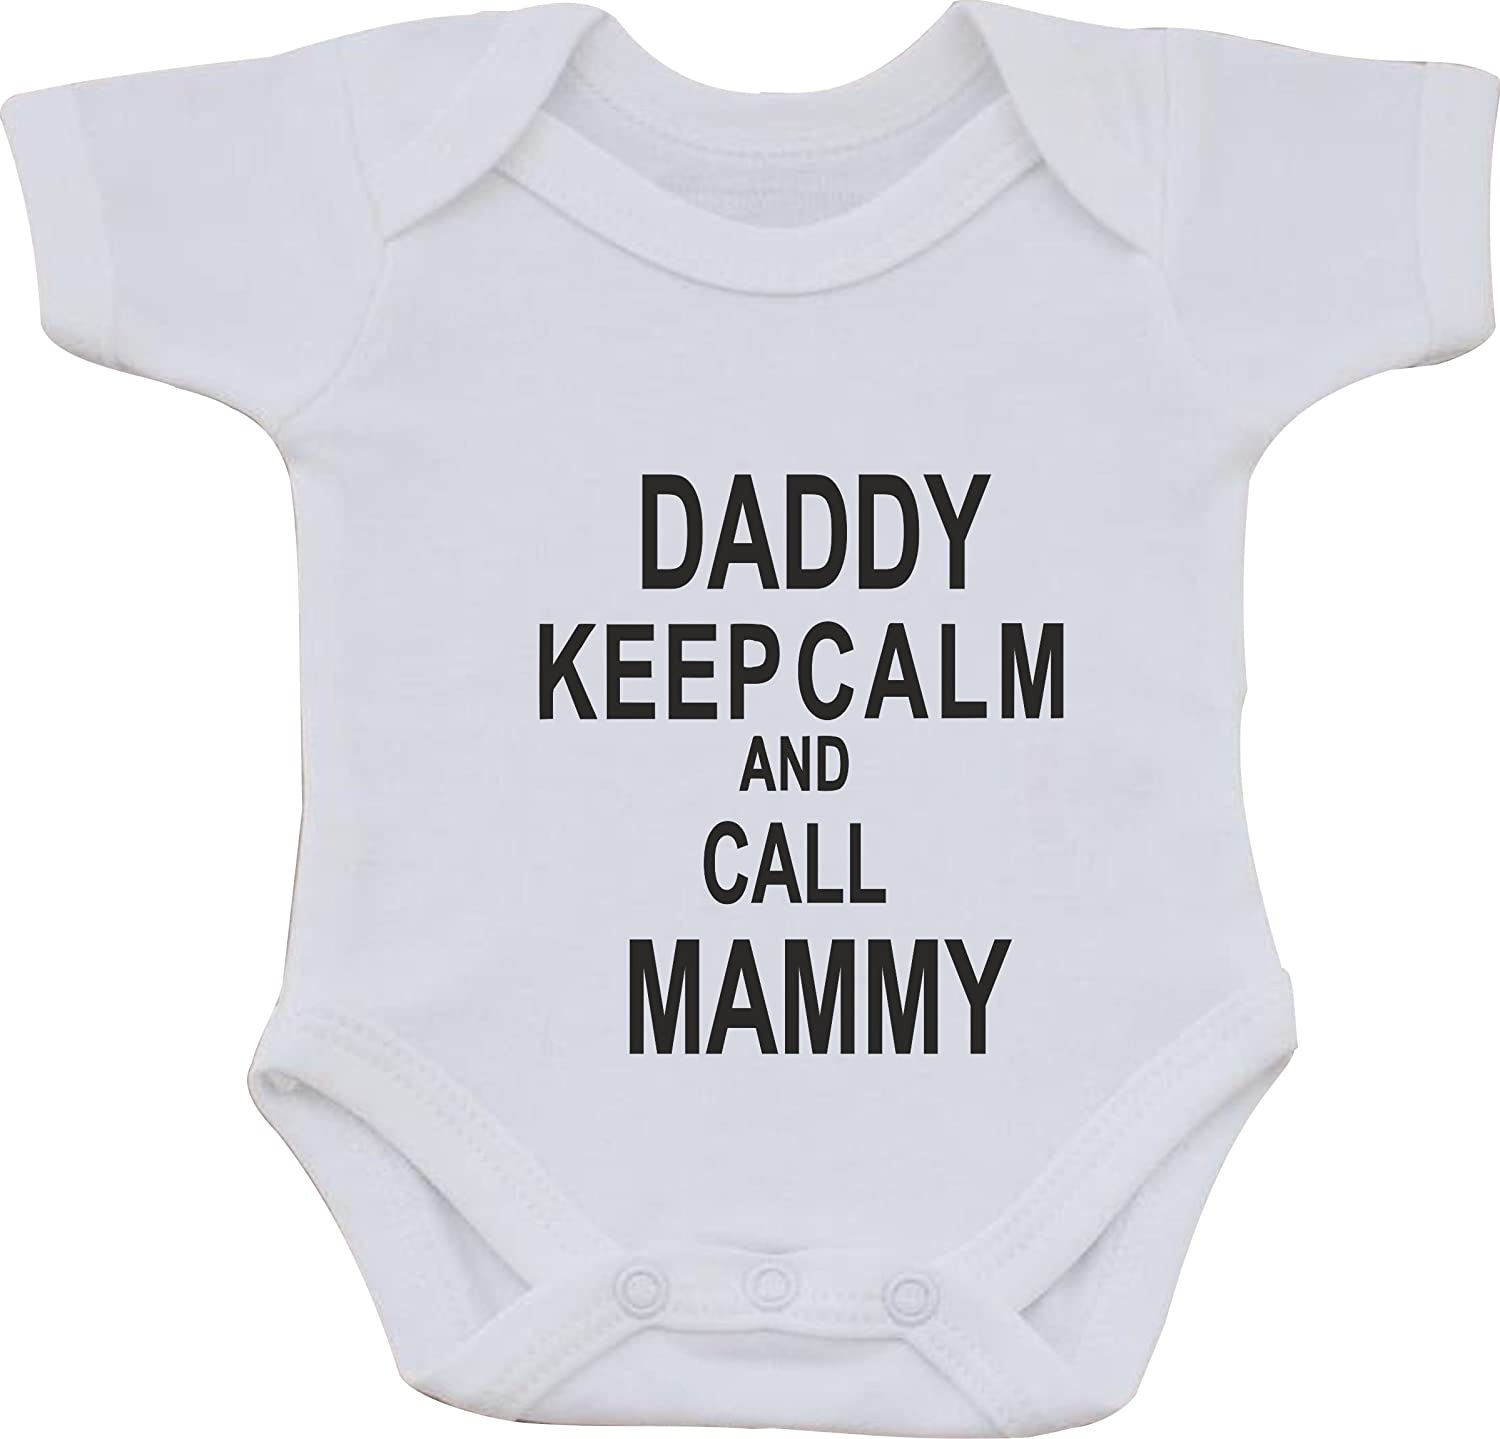 DADDY KEEP CALM AND CALL MAMMY FUNNY HUMOUR COTTON WHITE BABY VEST OR BIB (first size bib)